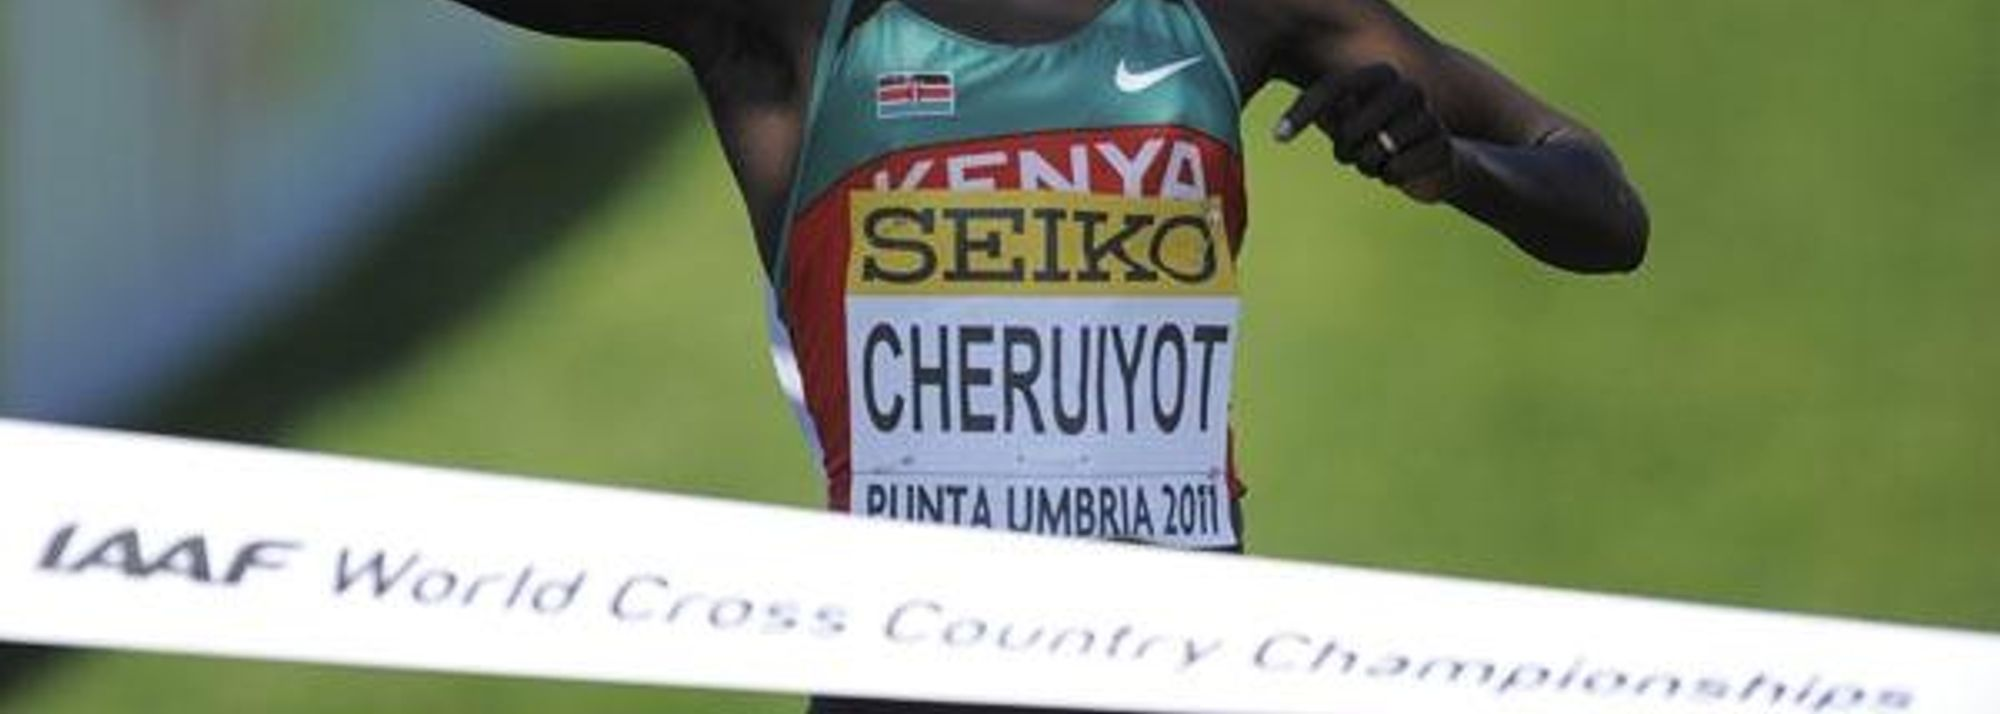 Cheruiyot wins race of champions - Women's Senior Race Report - Punta Umbria 2011